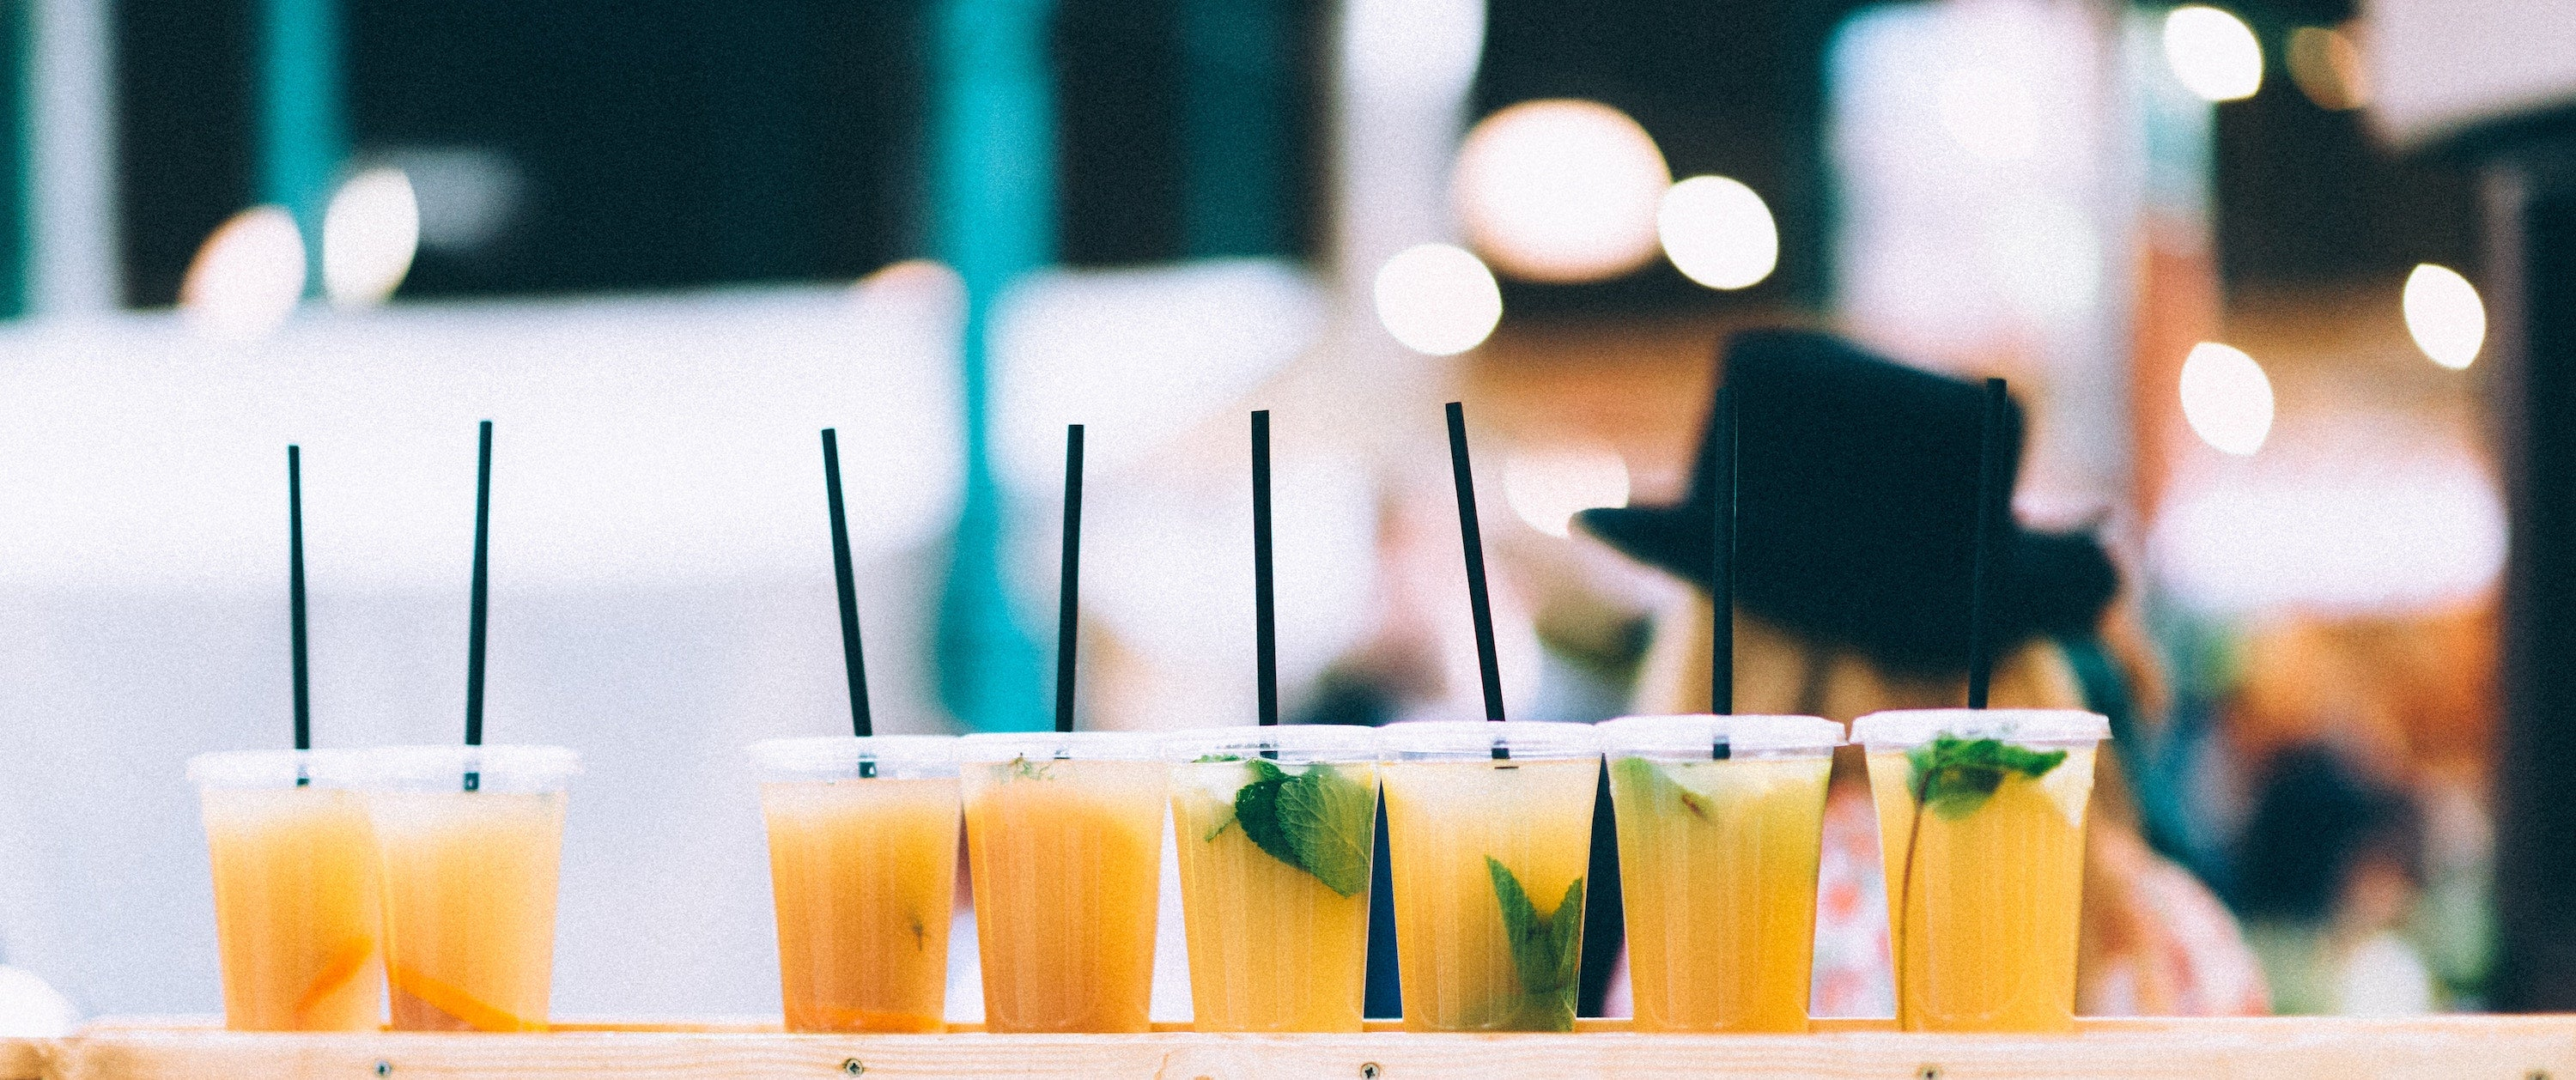 drinks with plastic straws